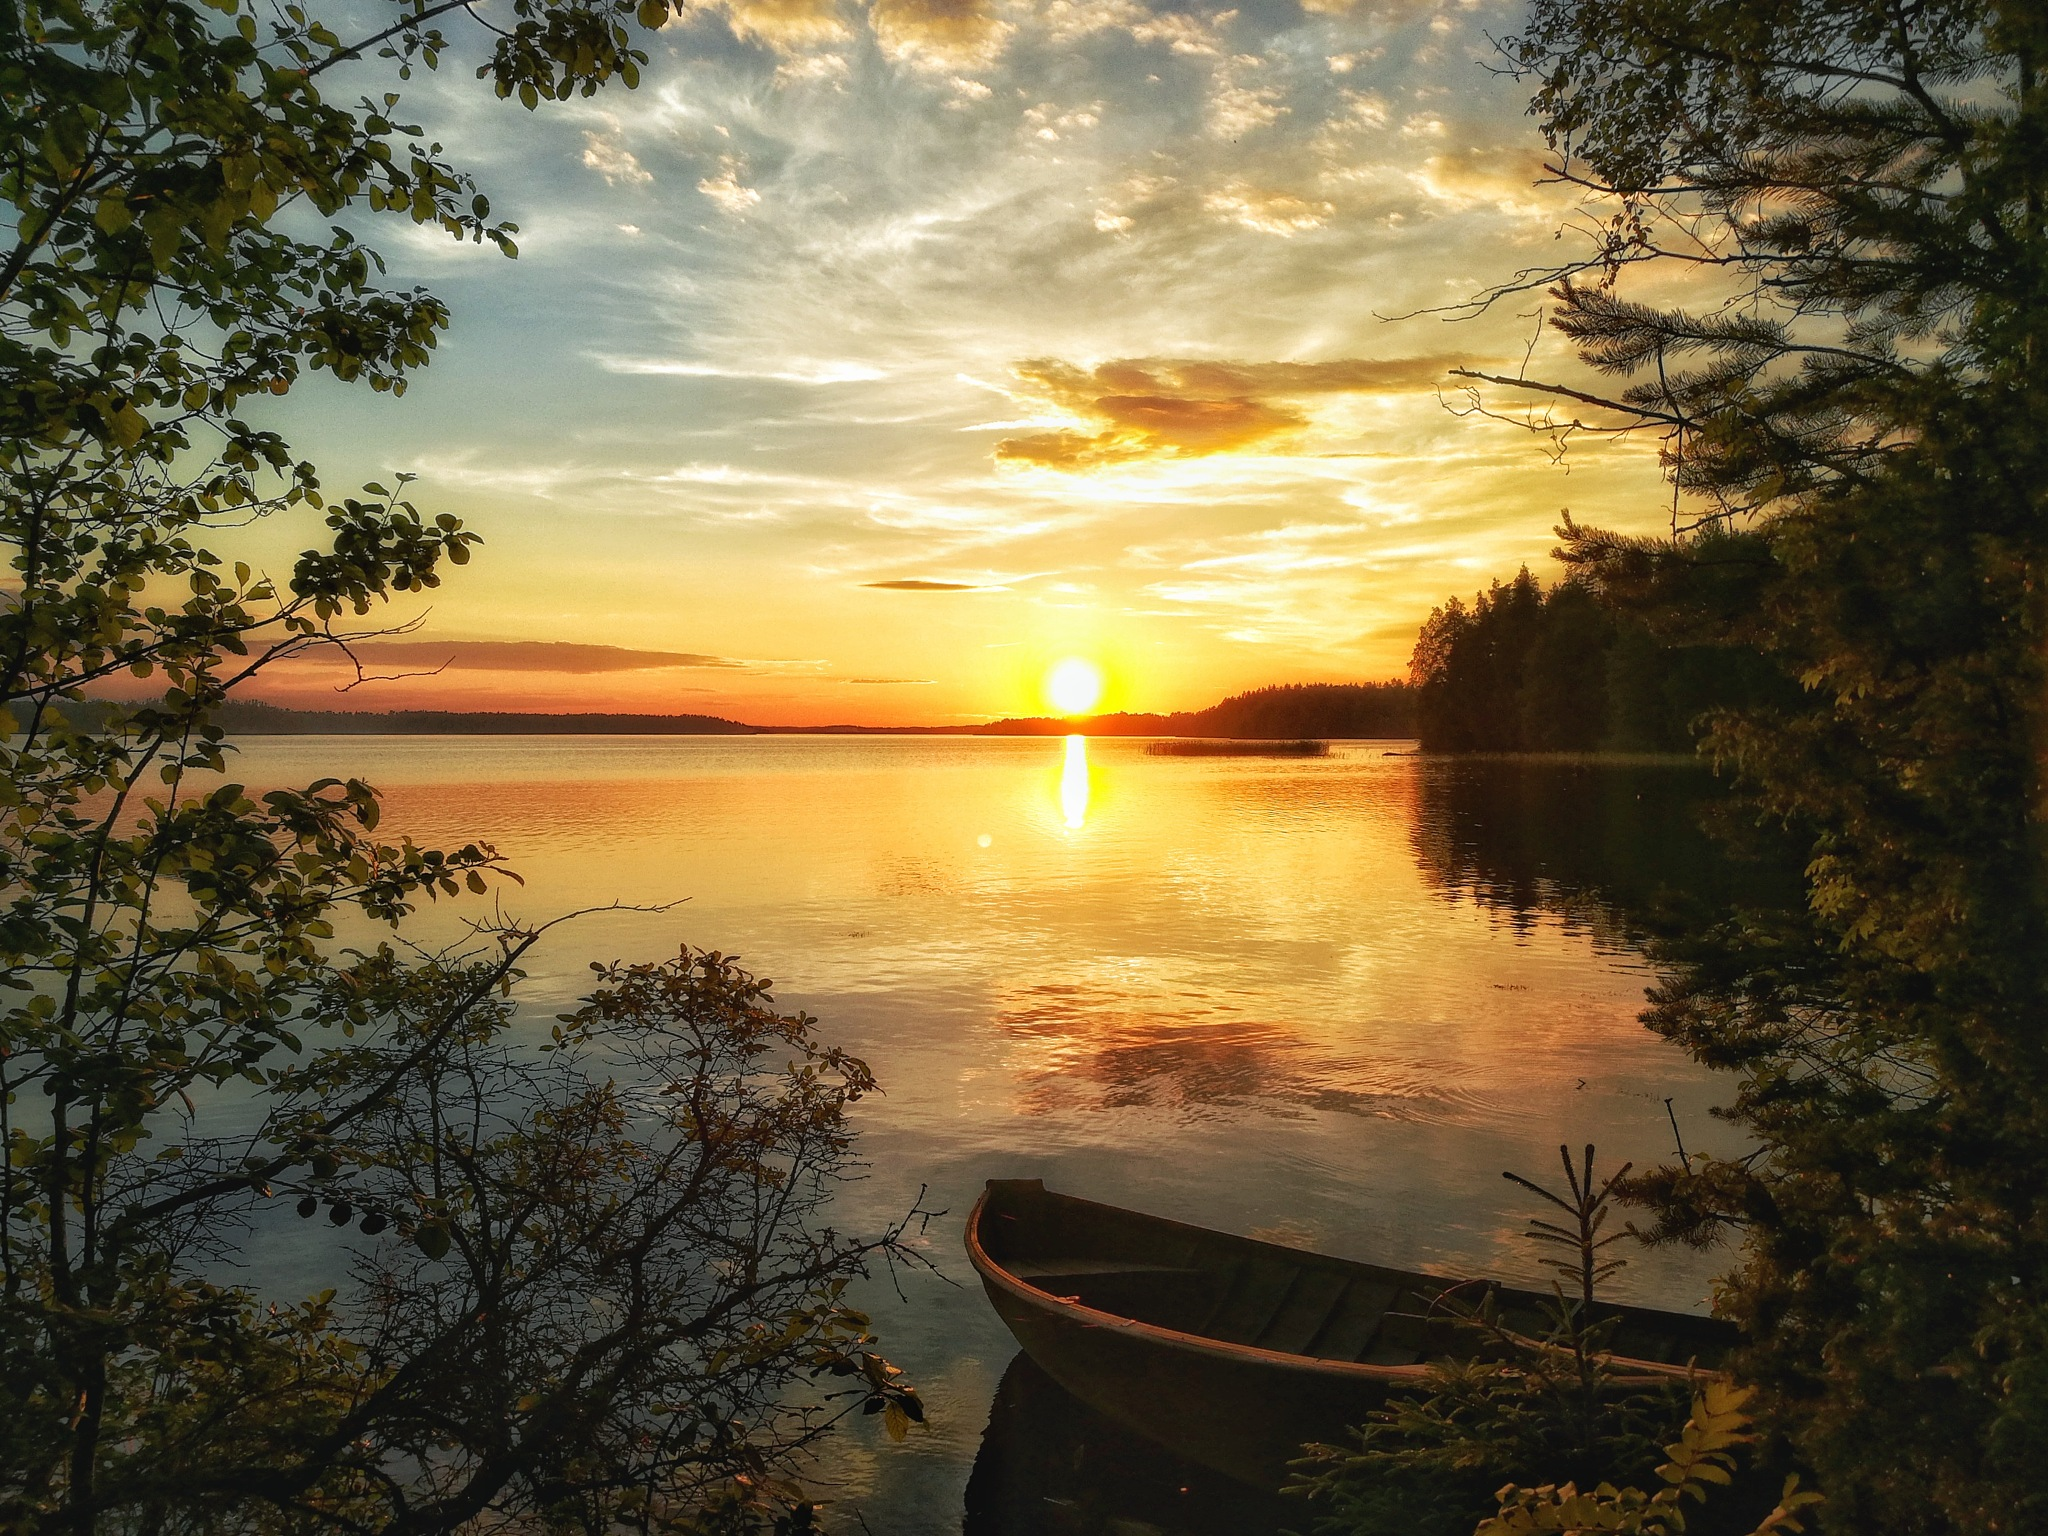 Sundown by lake Ruotsalainen by Sini Paavonsalo